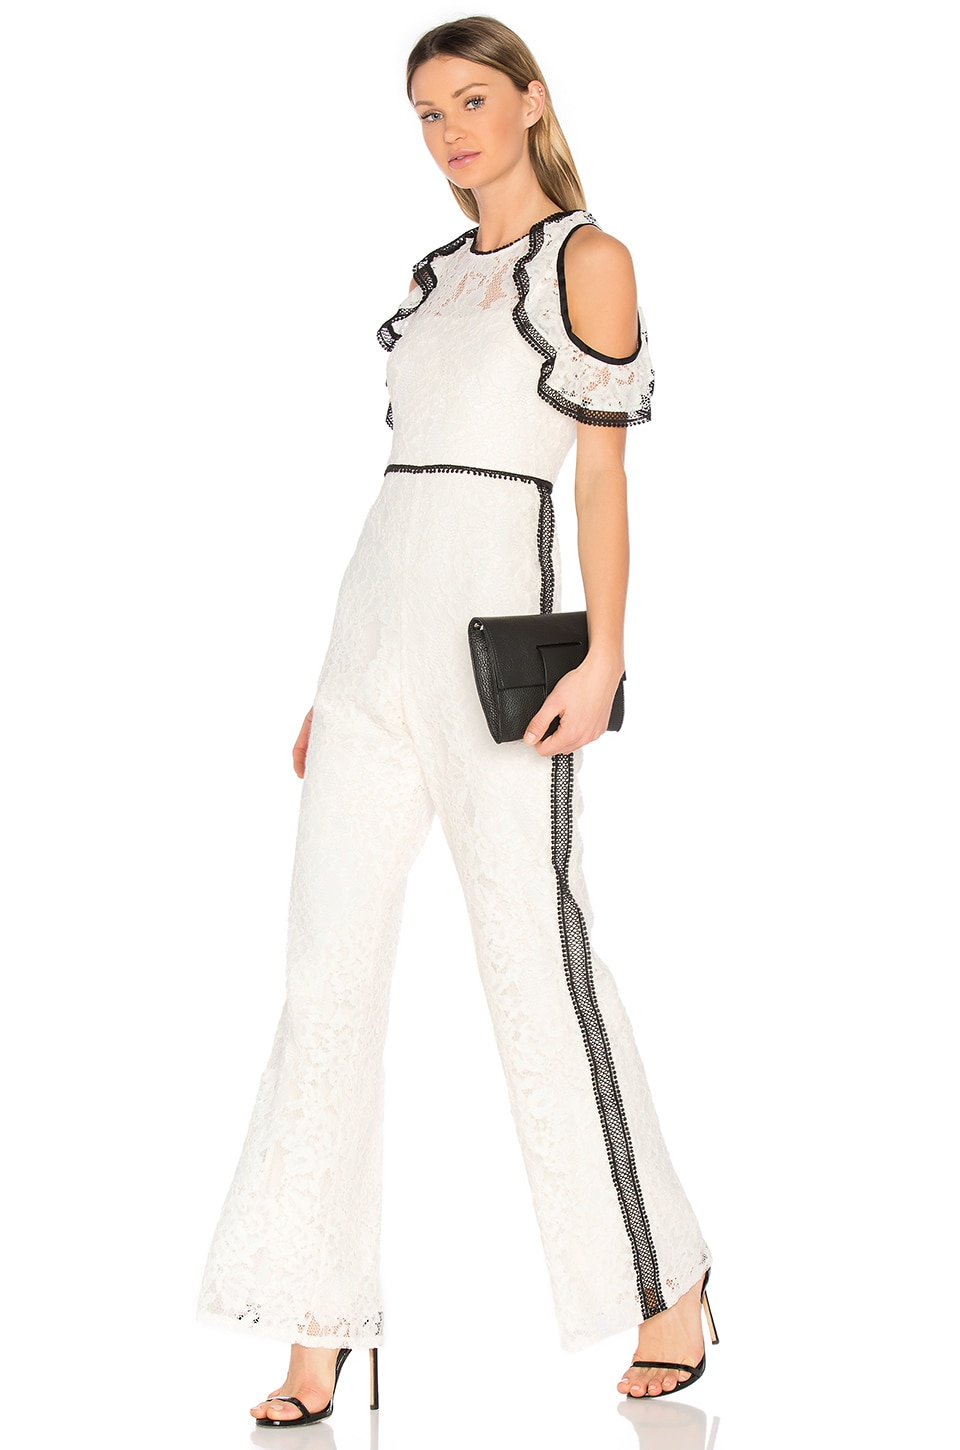 Alexis Philippe Jumpsuit in White